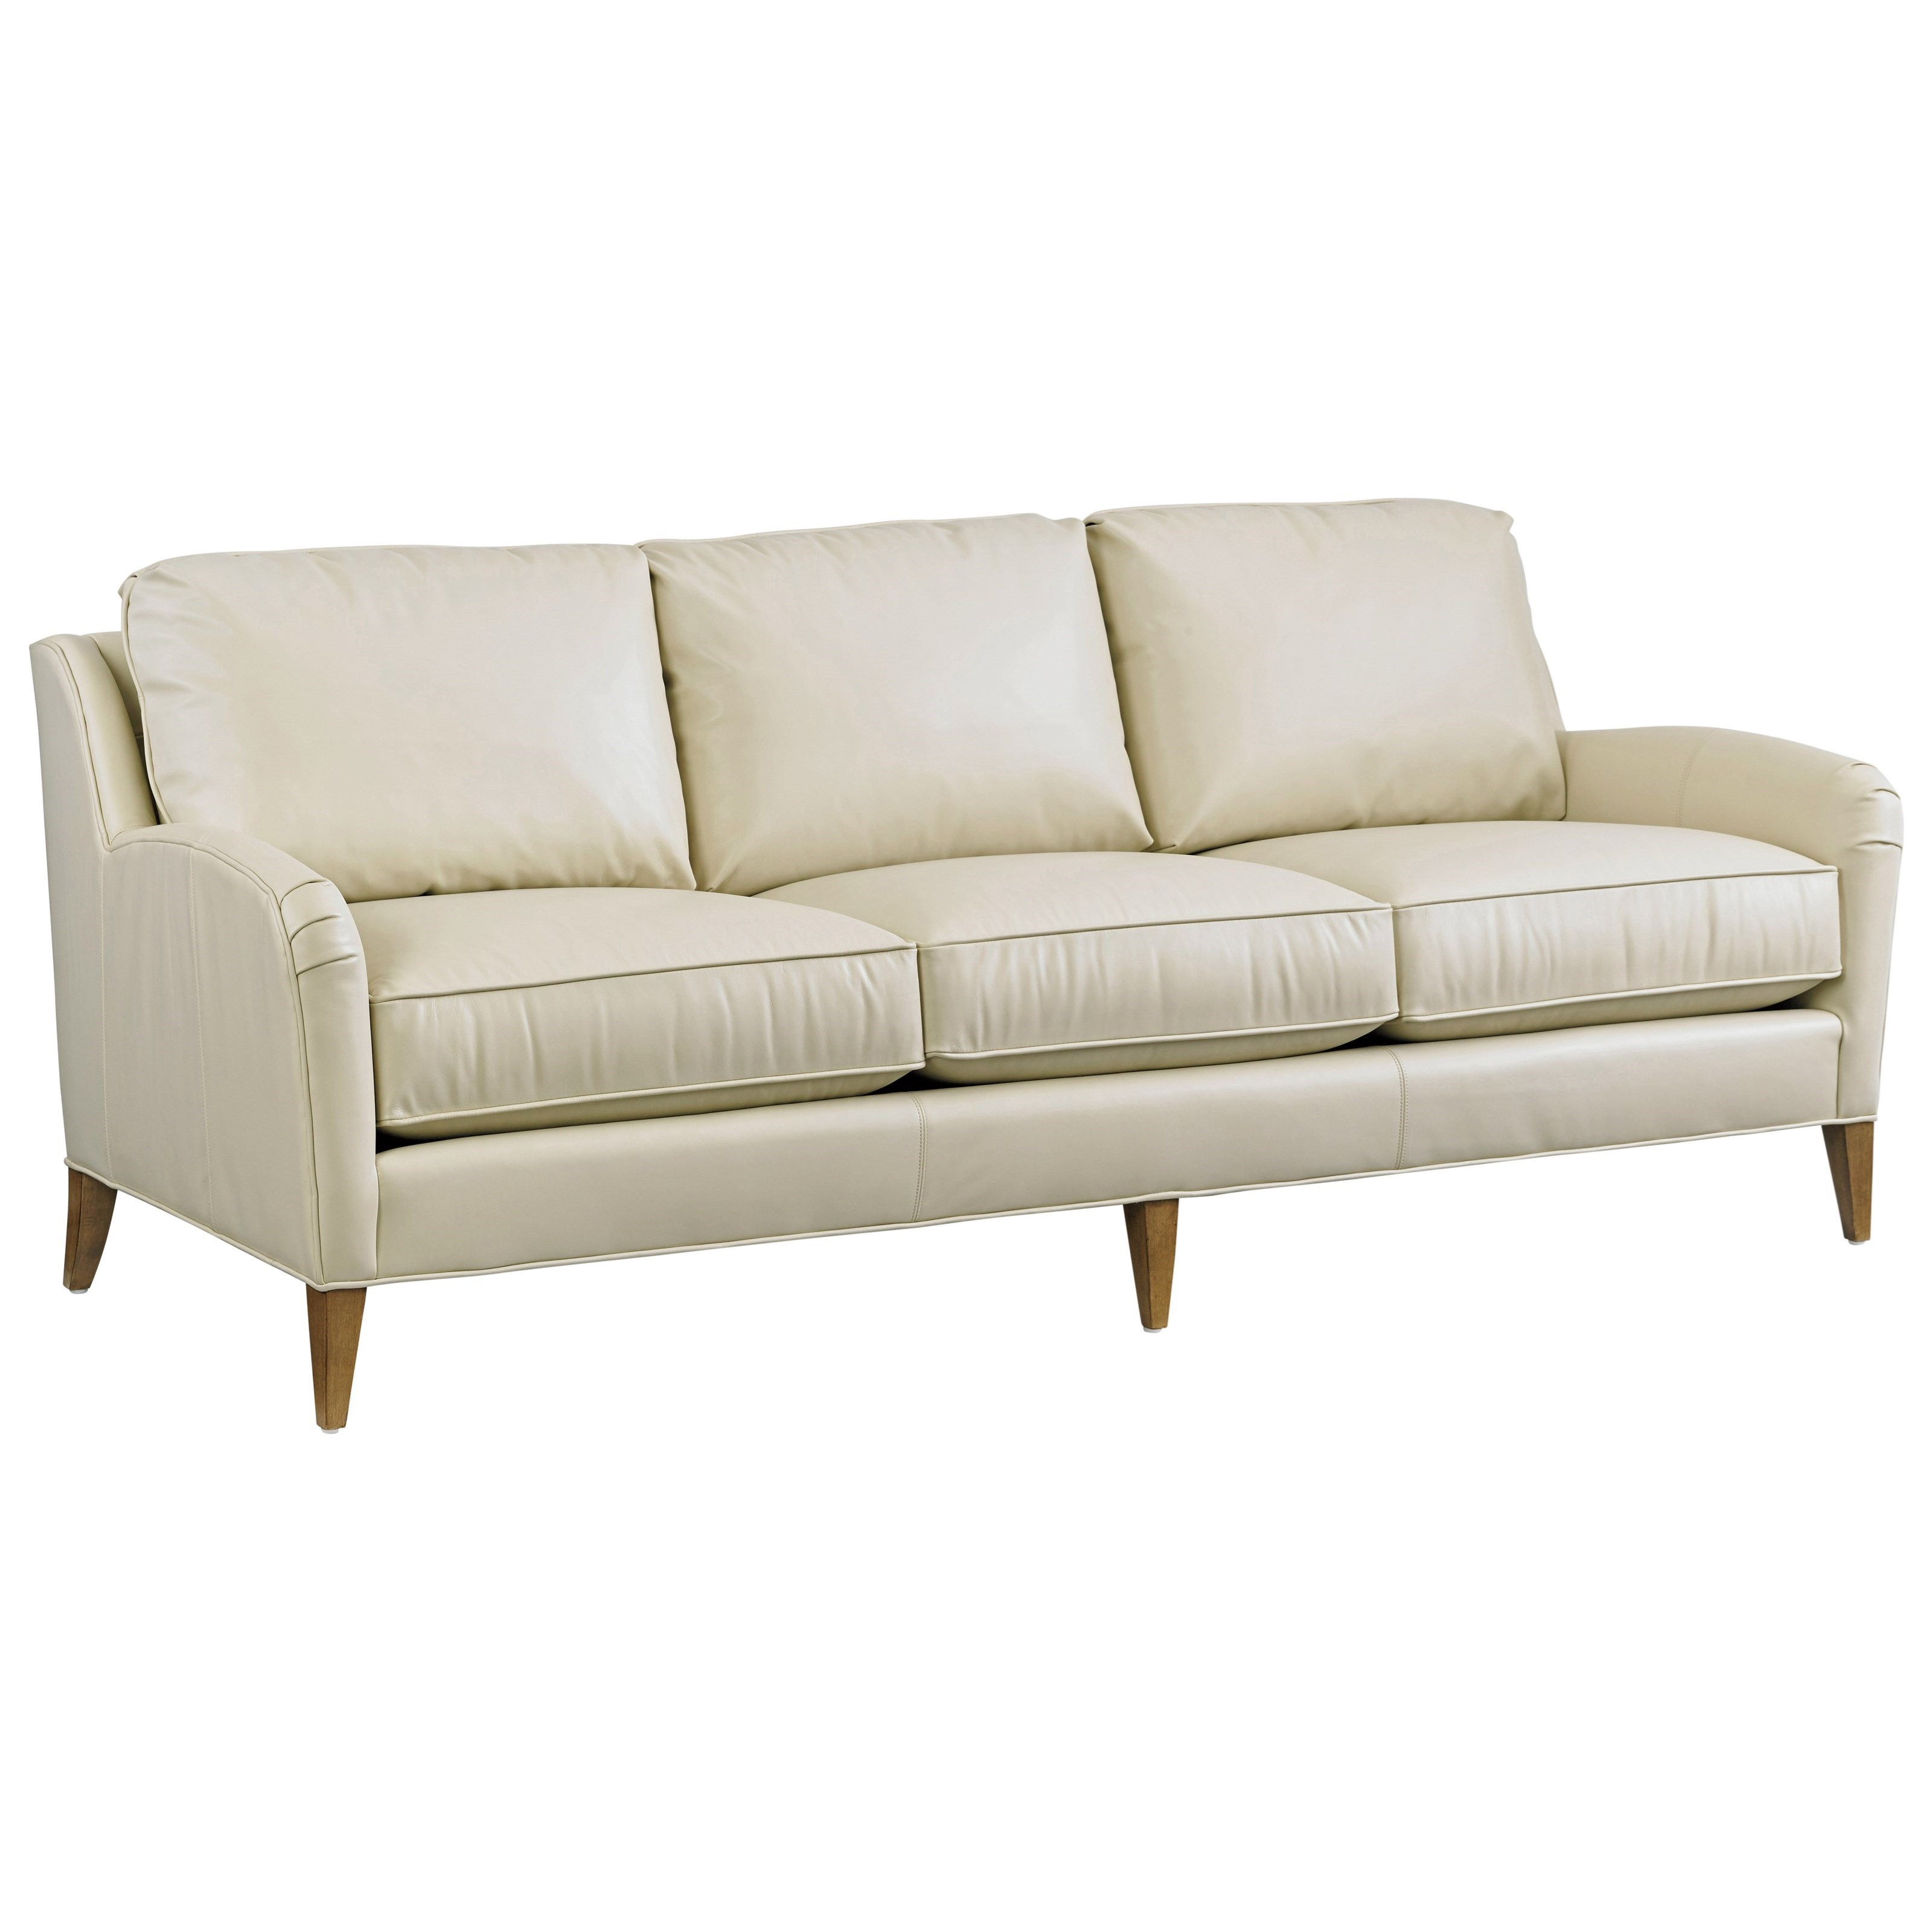 Twin Palms Coconut Grove Sofa by Tommy Bahama Home at Baer's Furniture